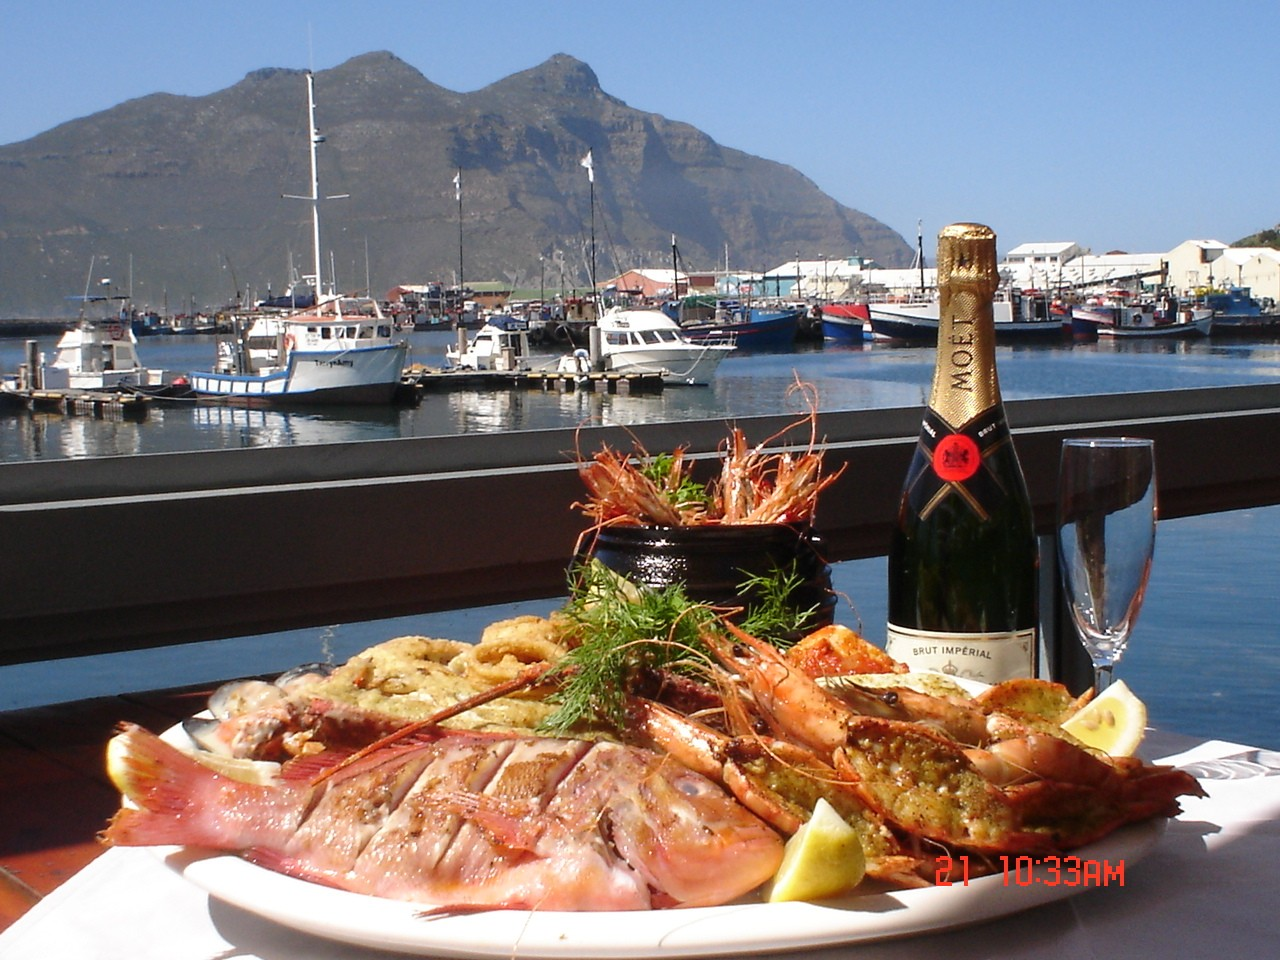 HOUT BAY'S BEAUTY FROM A FRESH PERSPECTIVE